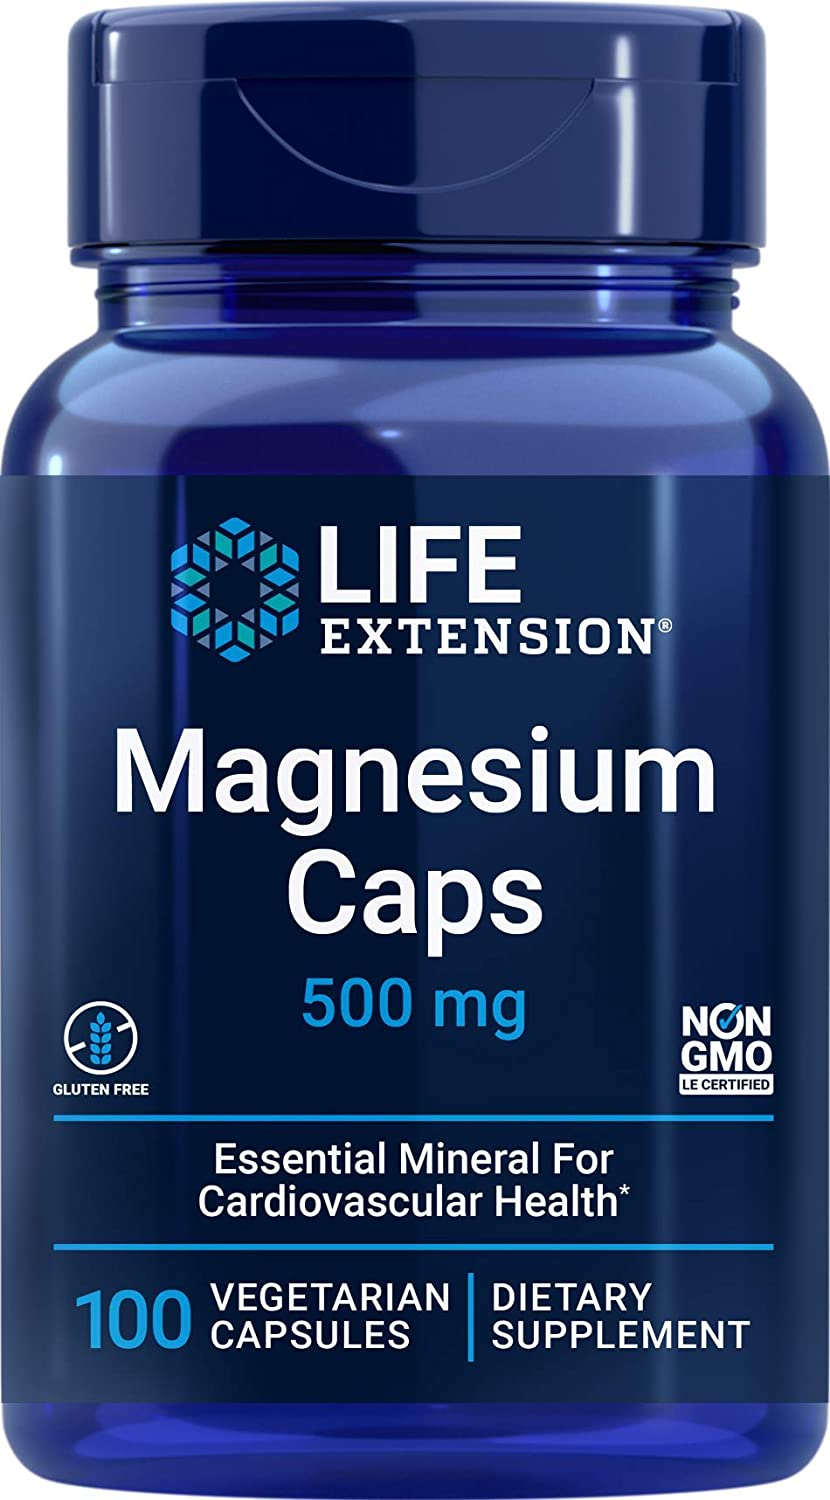 latest Life Extension Magnesium Caps 500 mg Bl Max 78% OFF Mineral – Essential